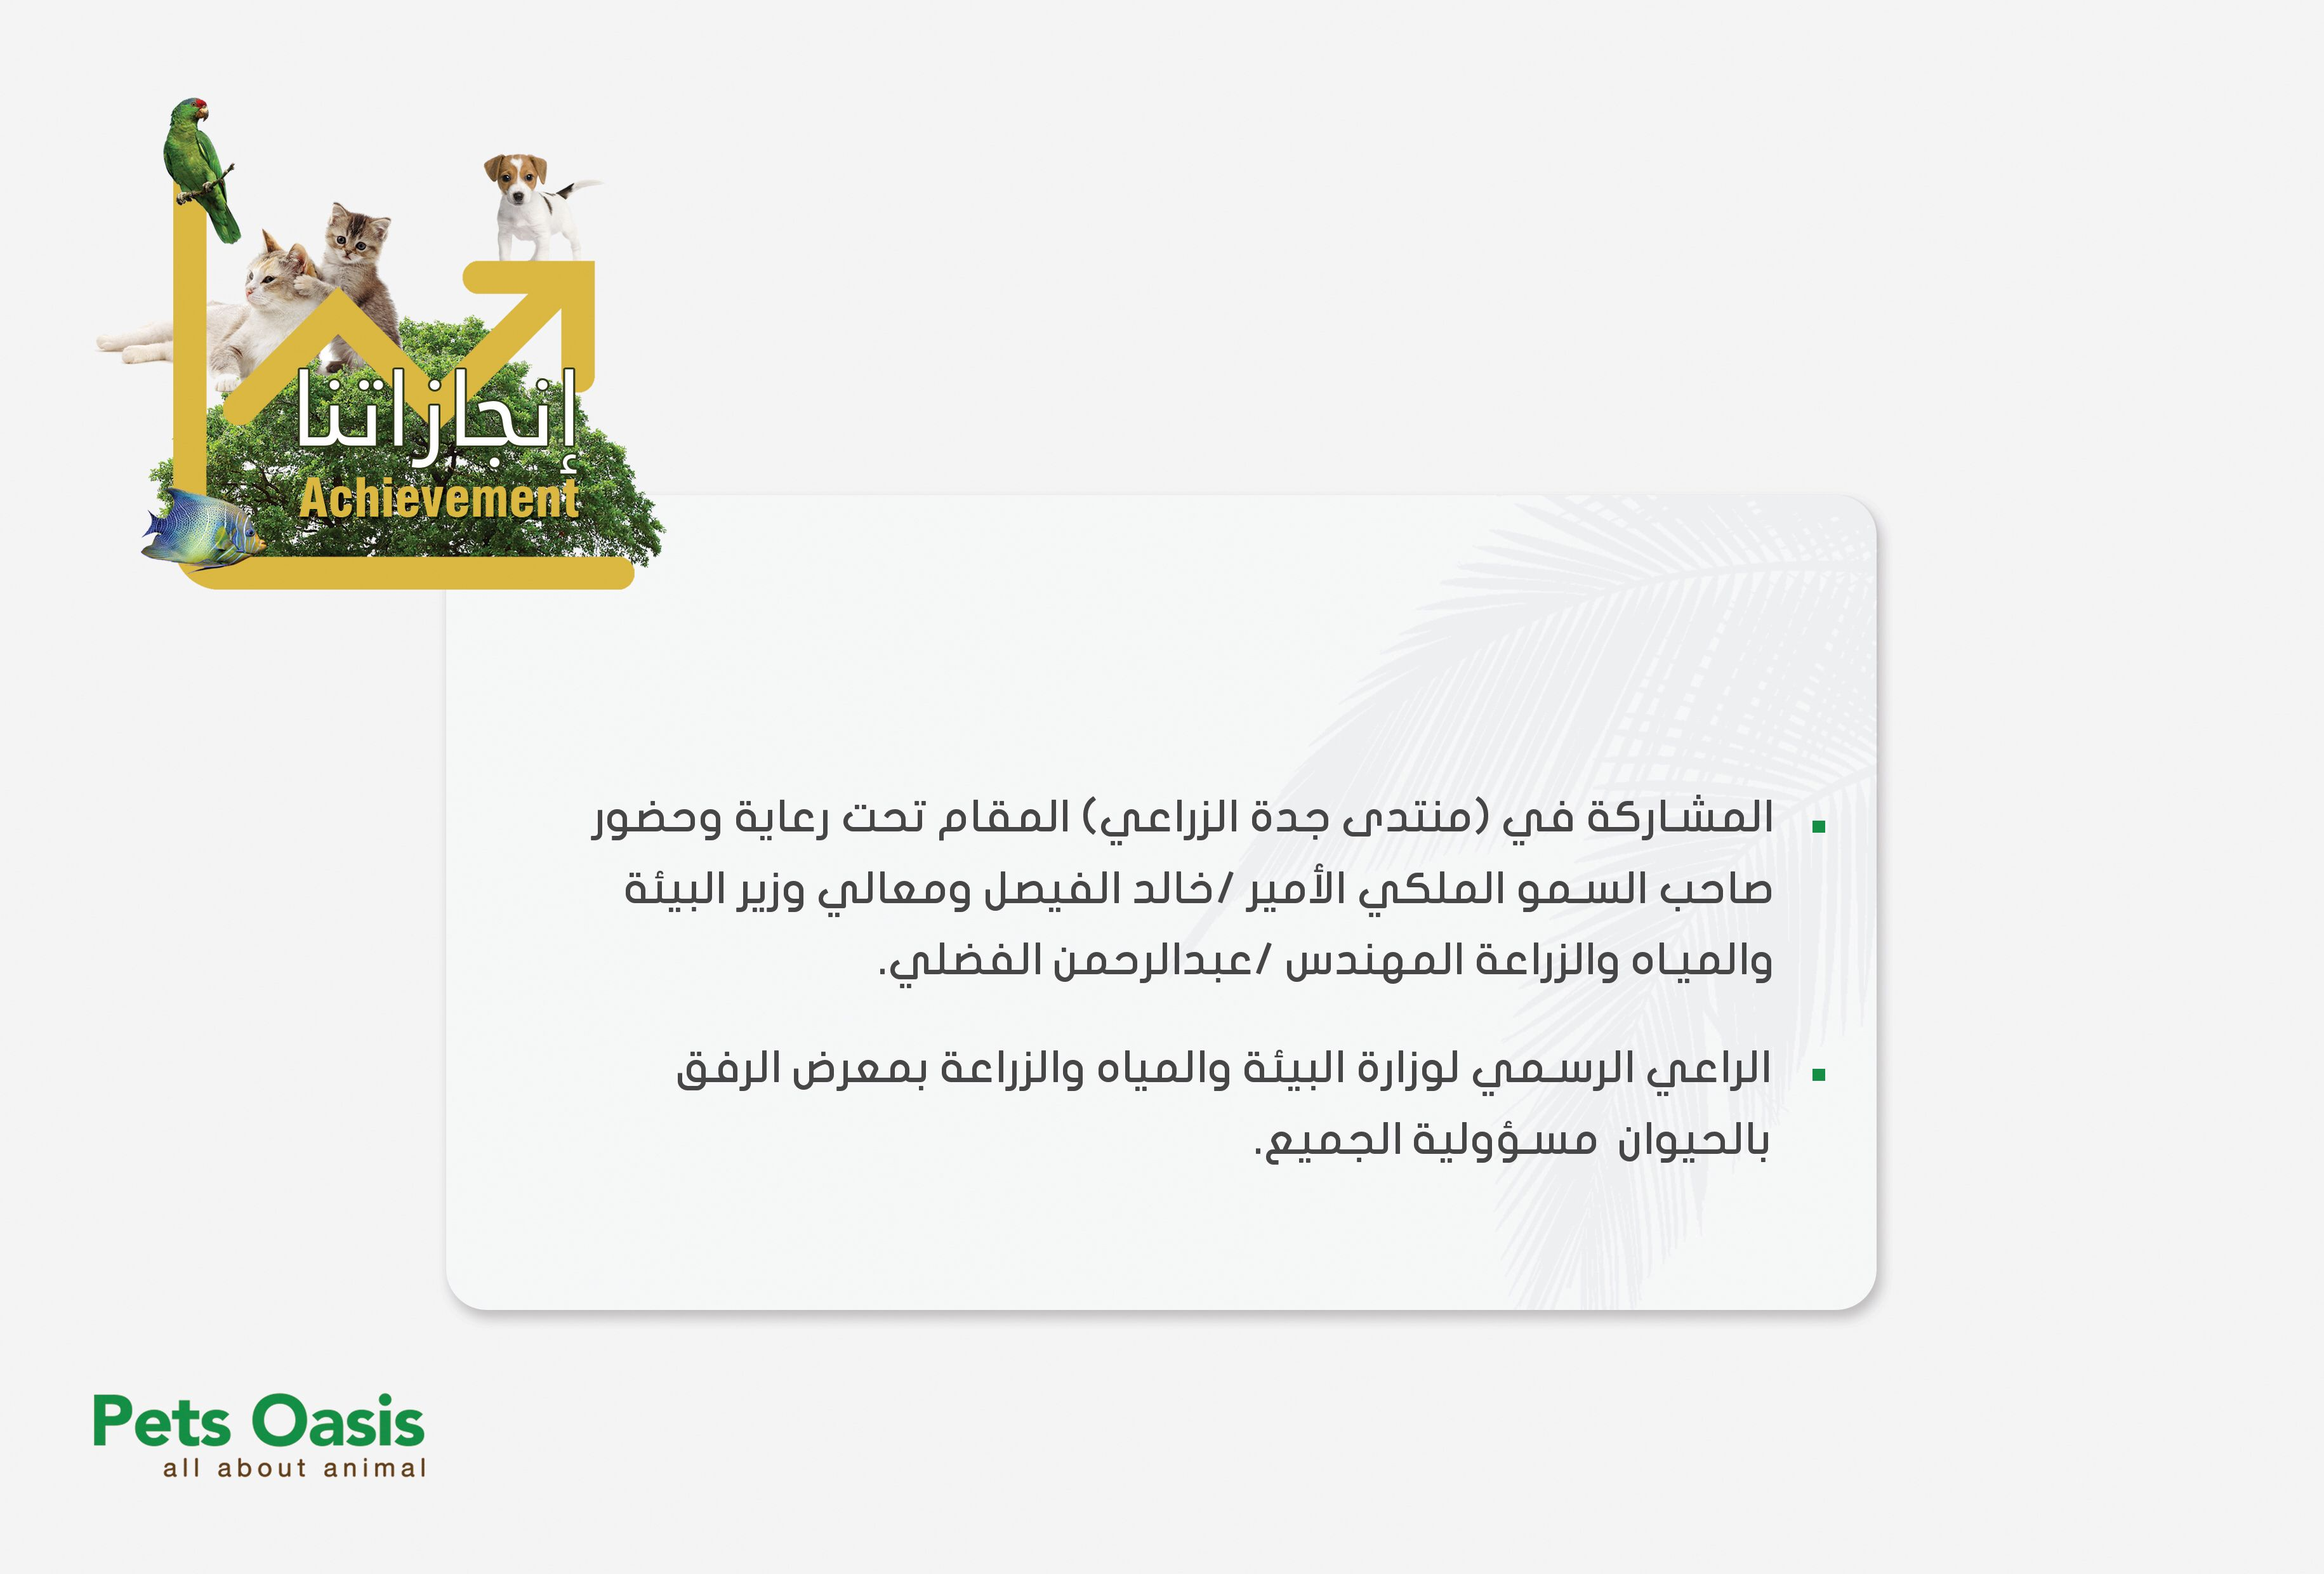 Pin By Pet Oasis واحة الحيوان On Company Profile Company Profile All About Animals Oasis